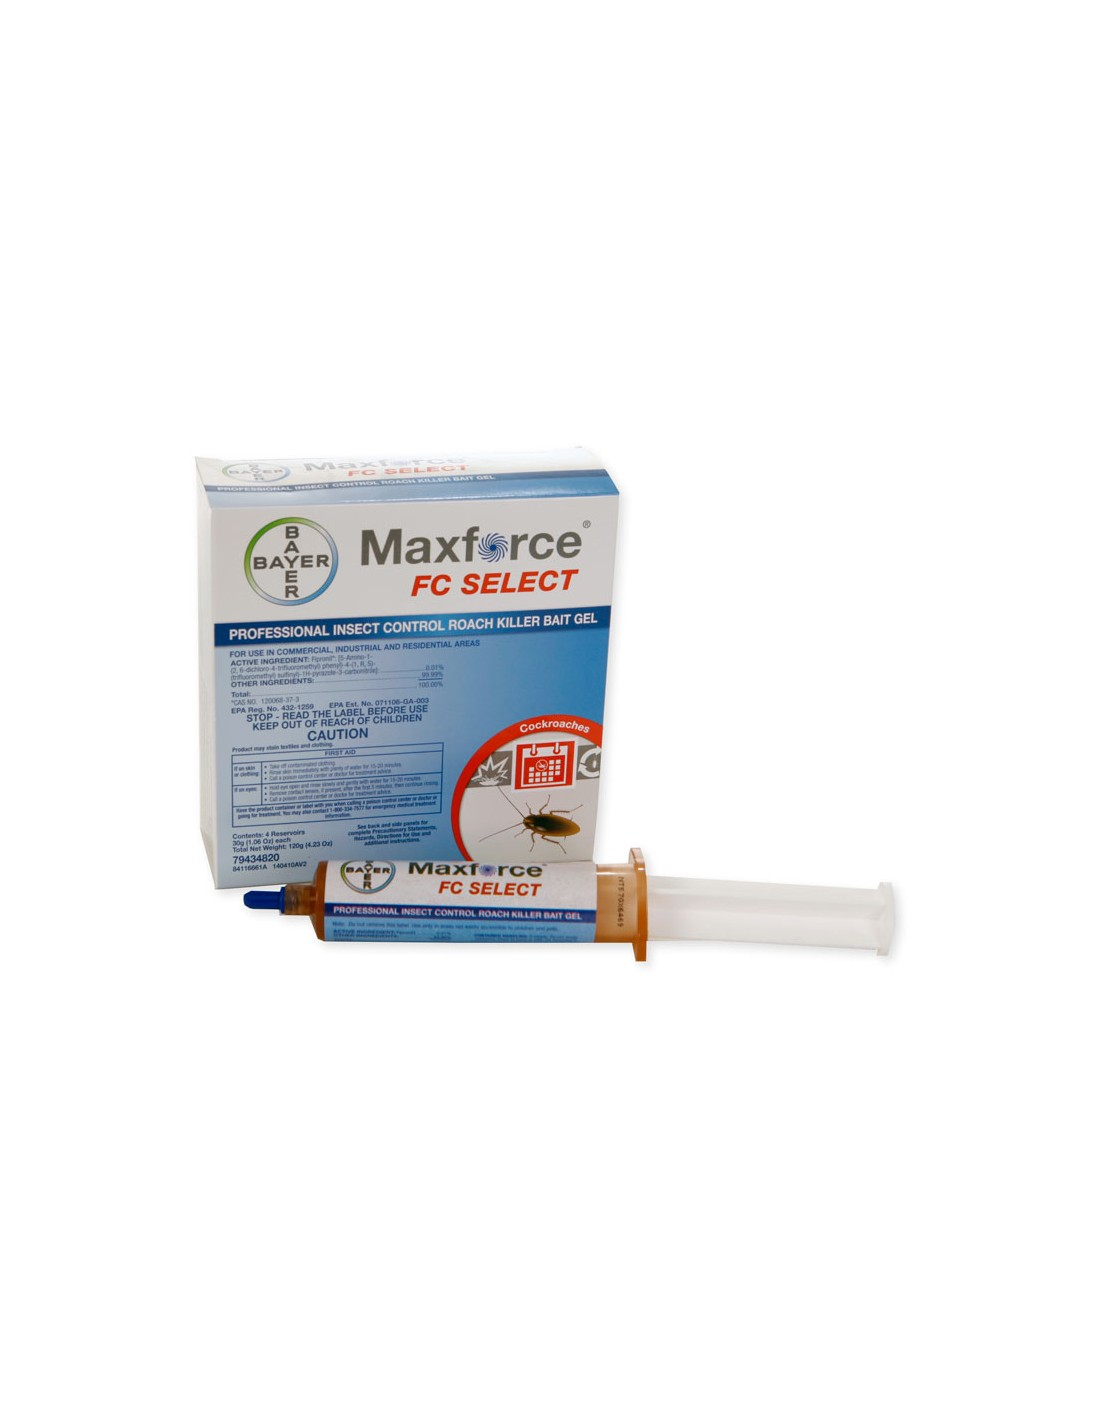 Do I have to buy a Maxforce bait injector?